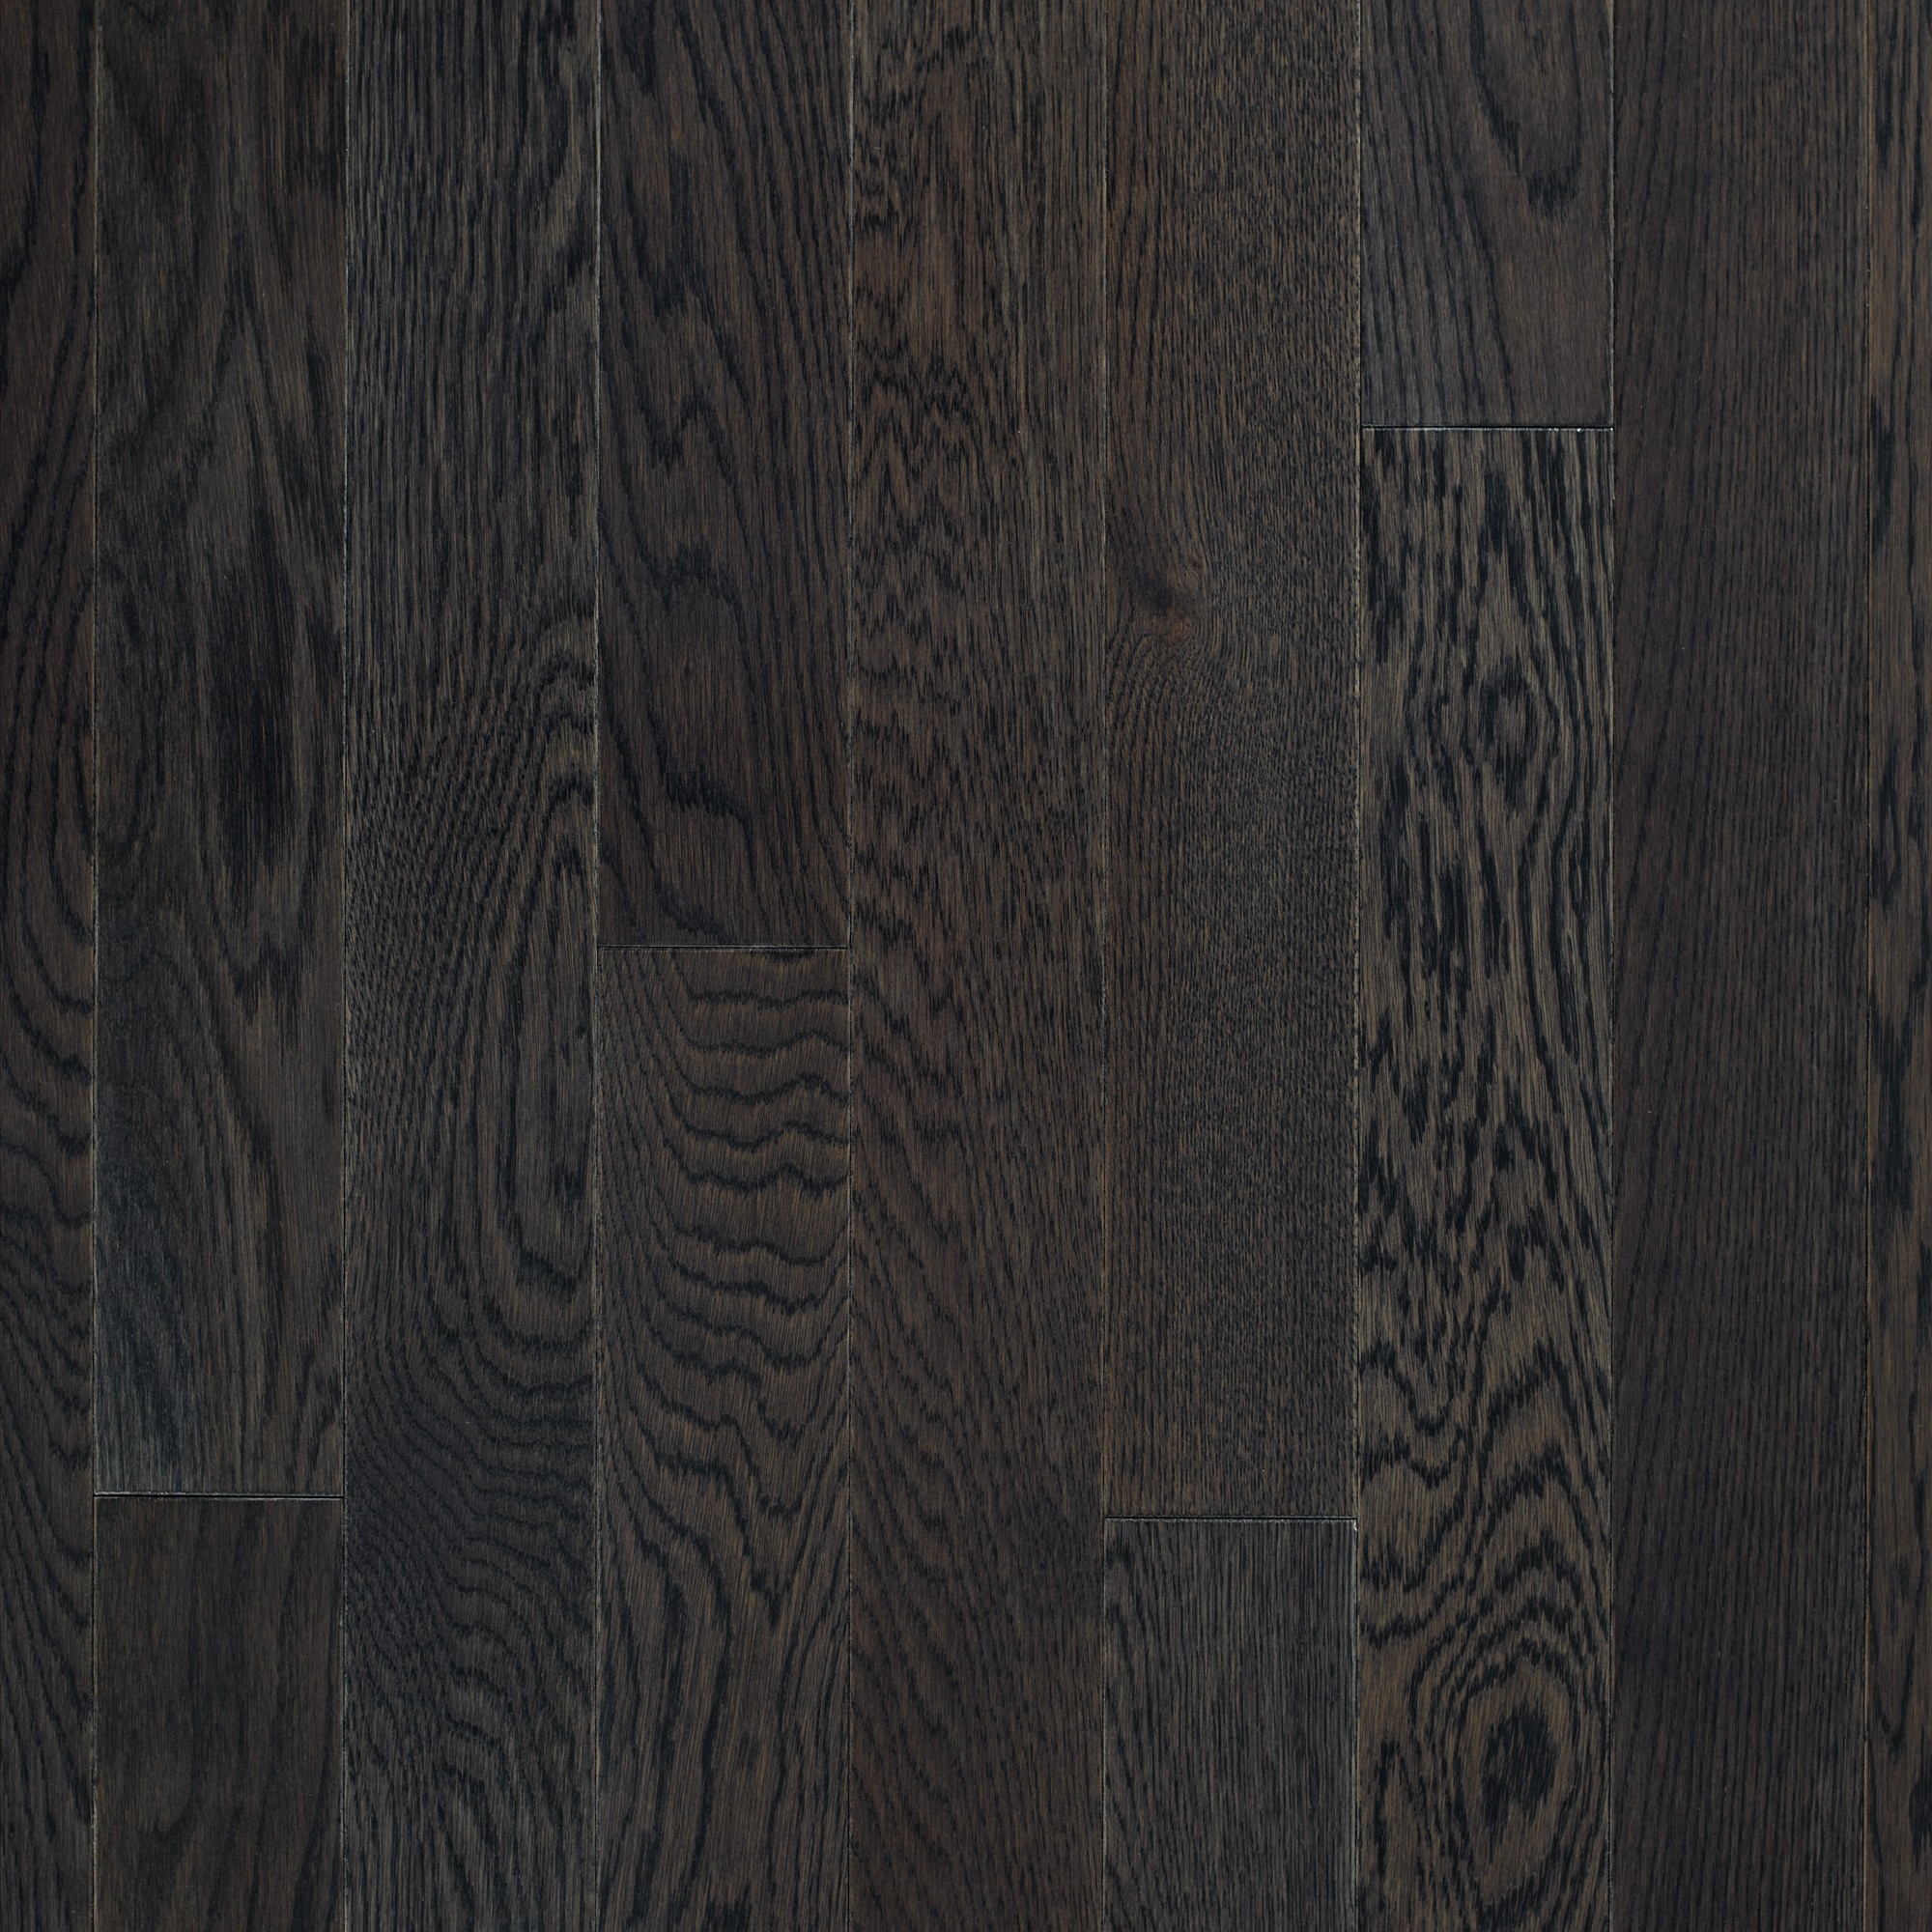 Smooth White Oak Gotham Vintage Hardwood Flooring And